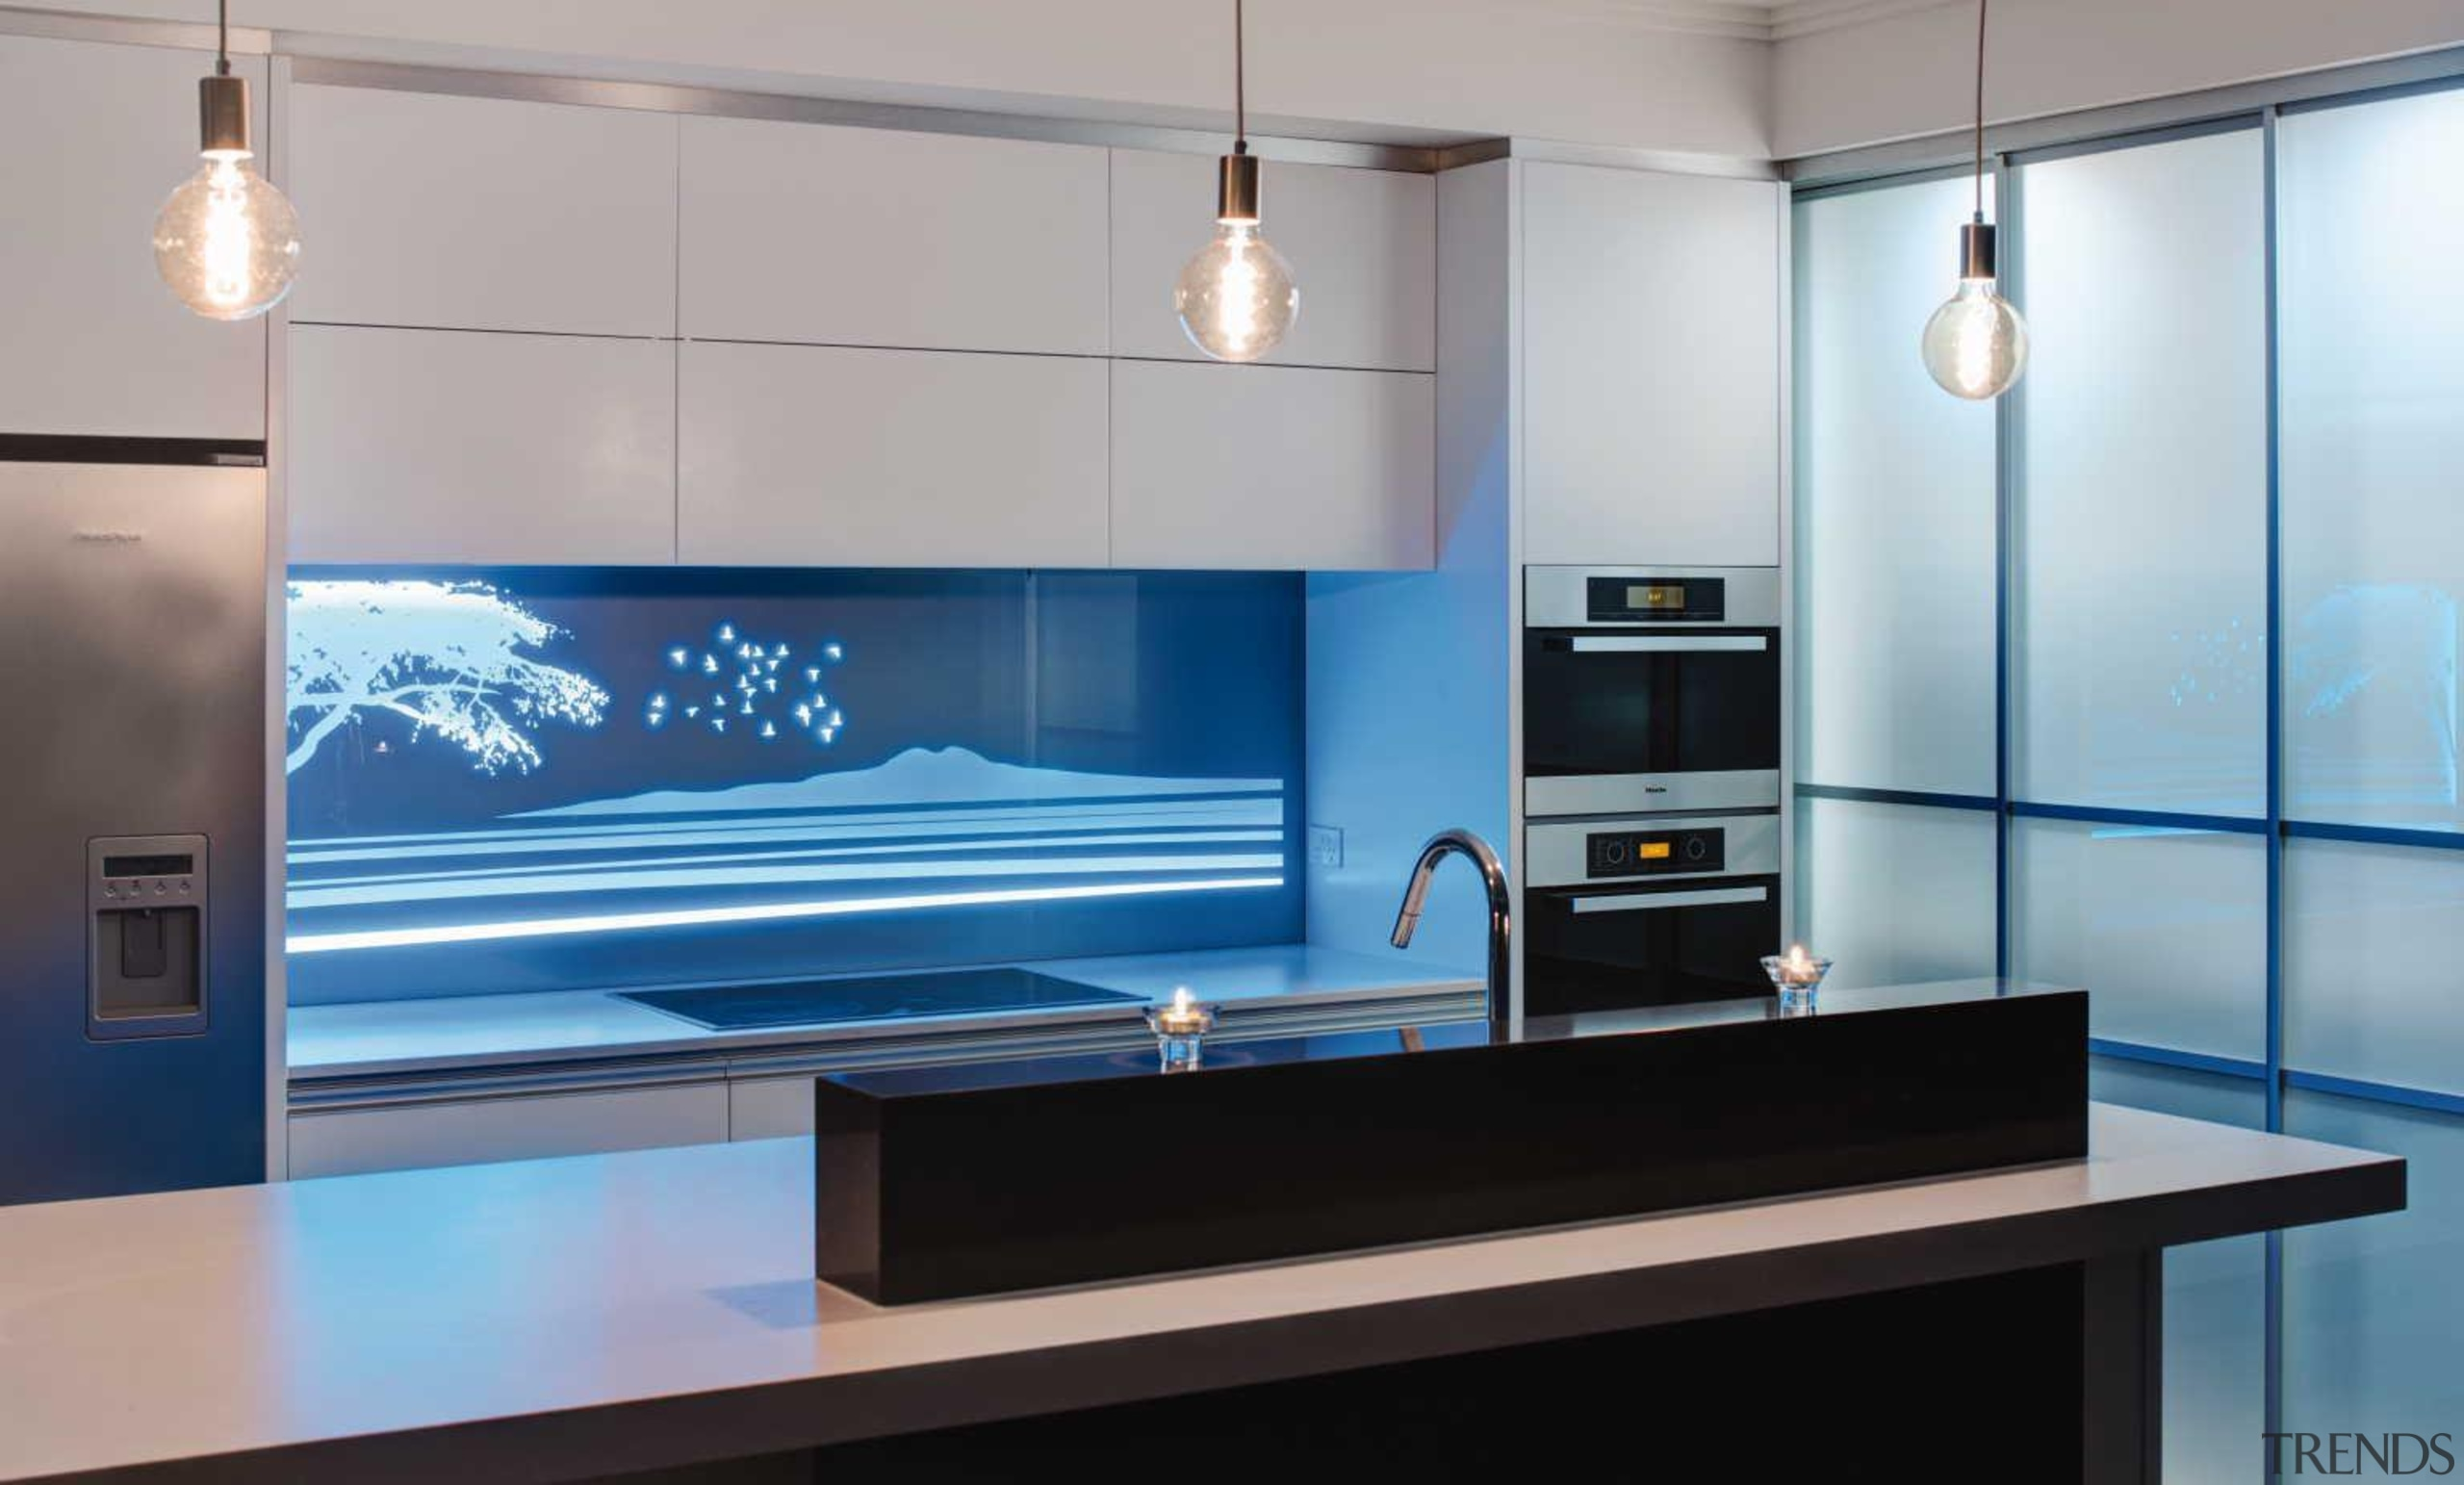 Every kitchen needs a hero and a vibrant furniture, glass, interior design, lighting, product design, gray